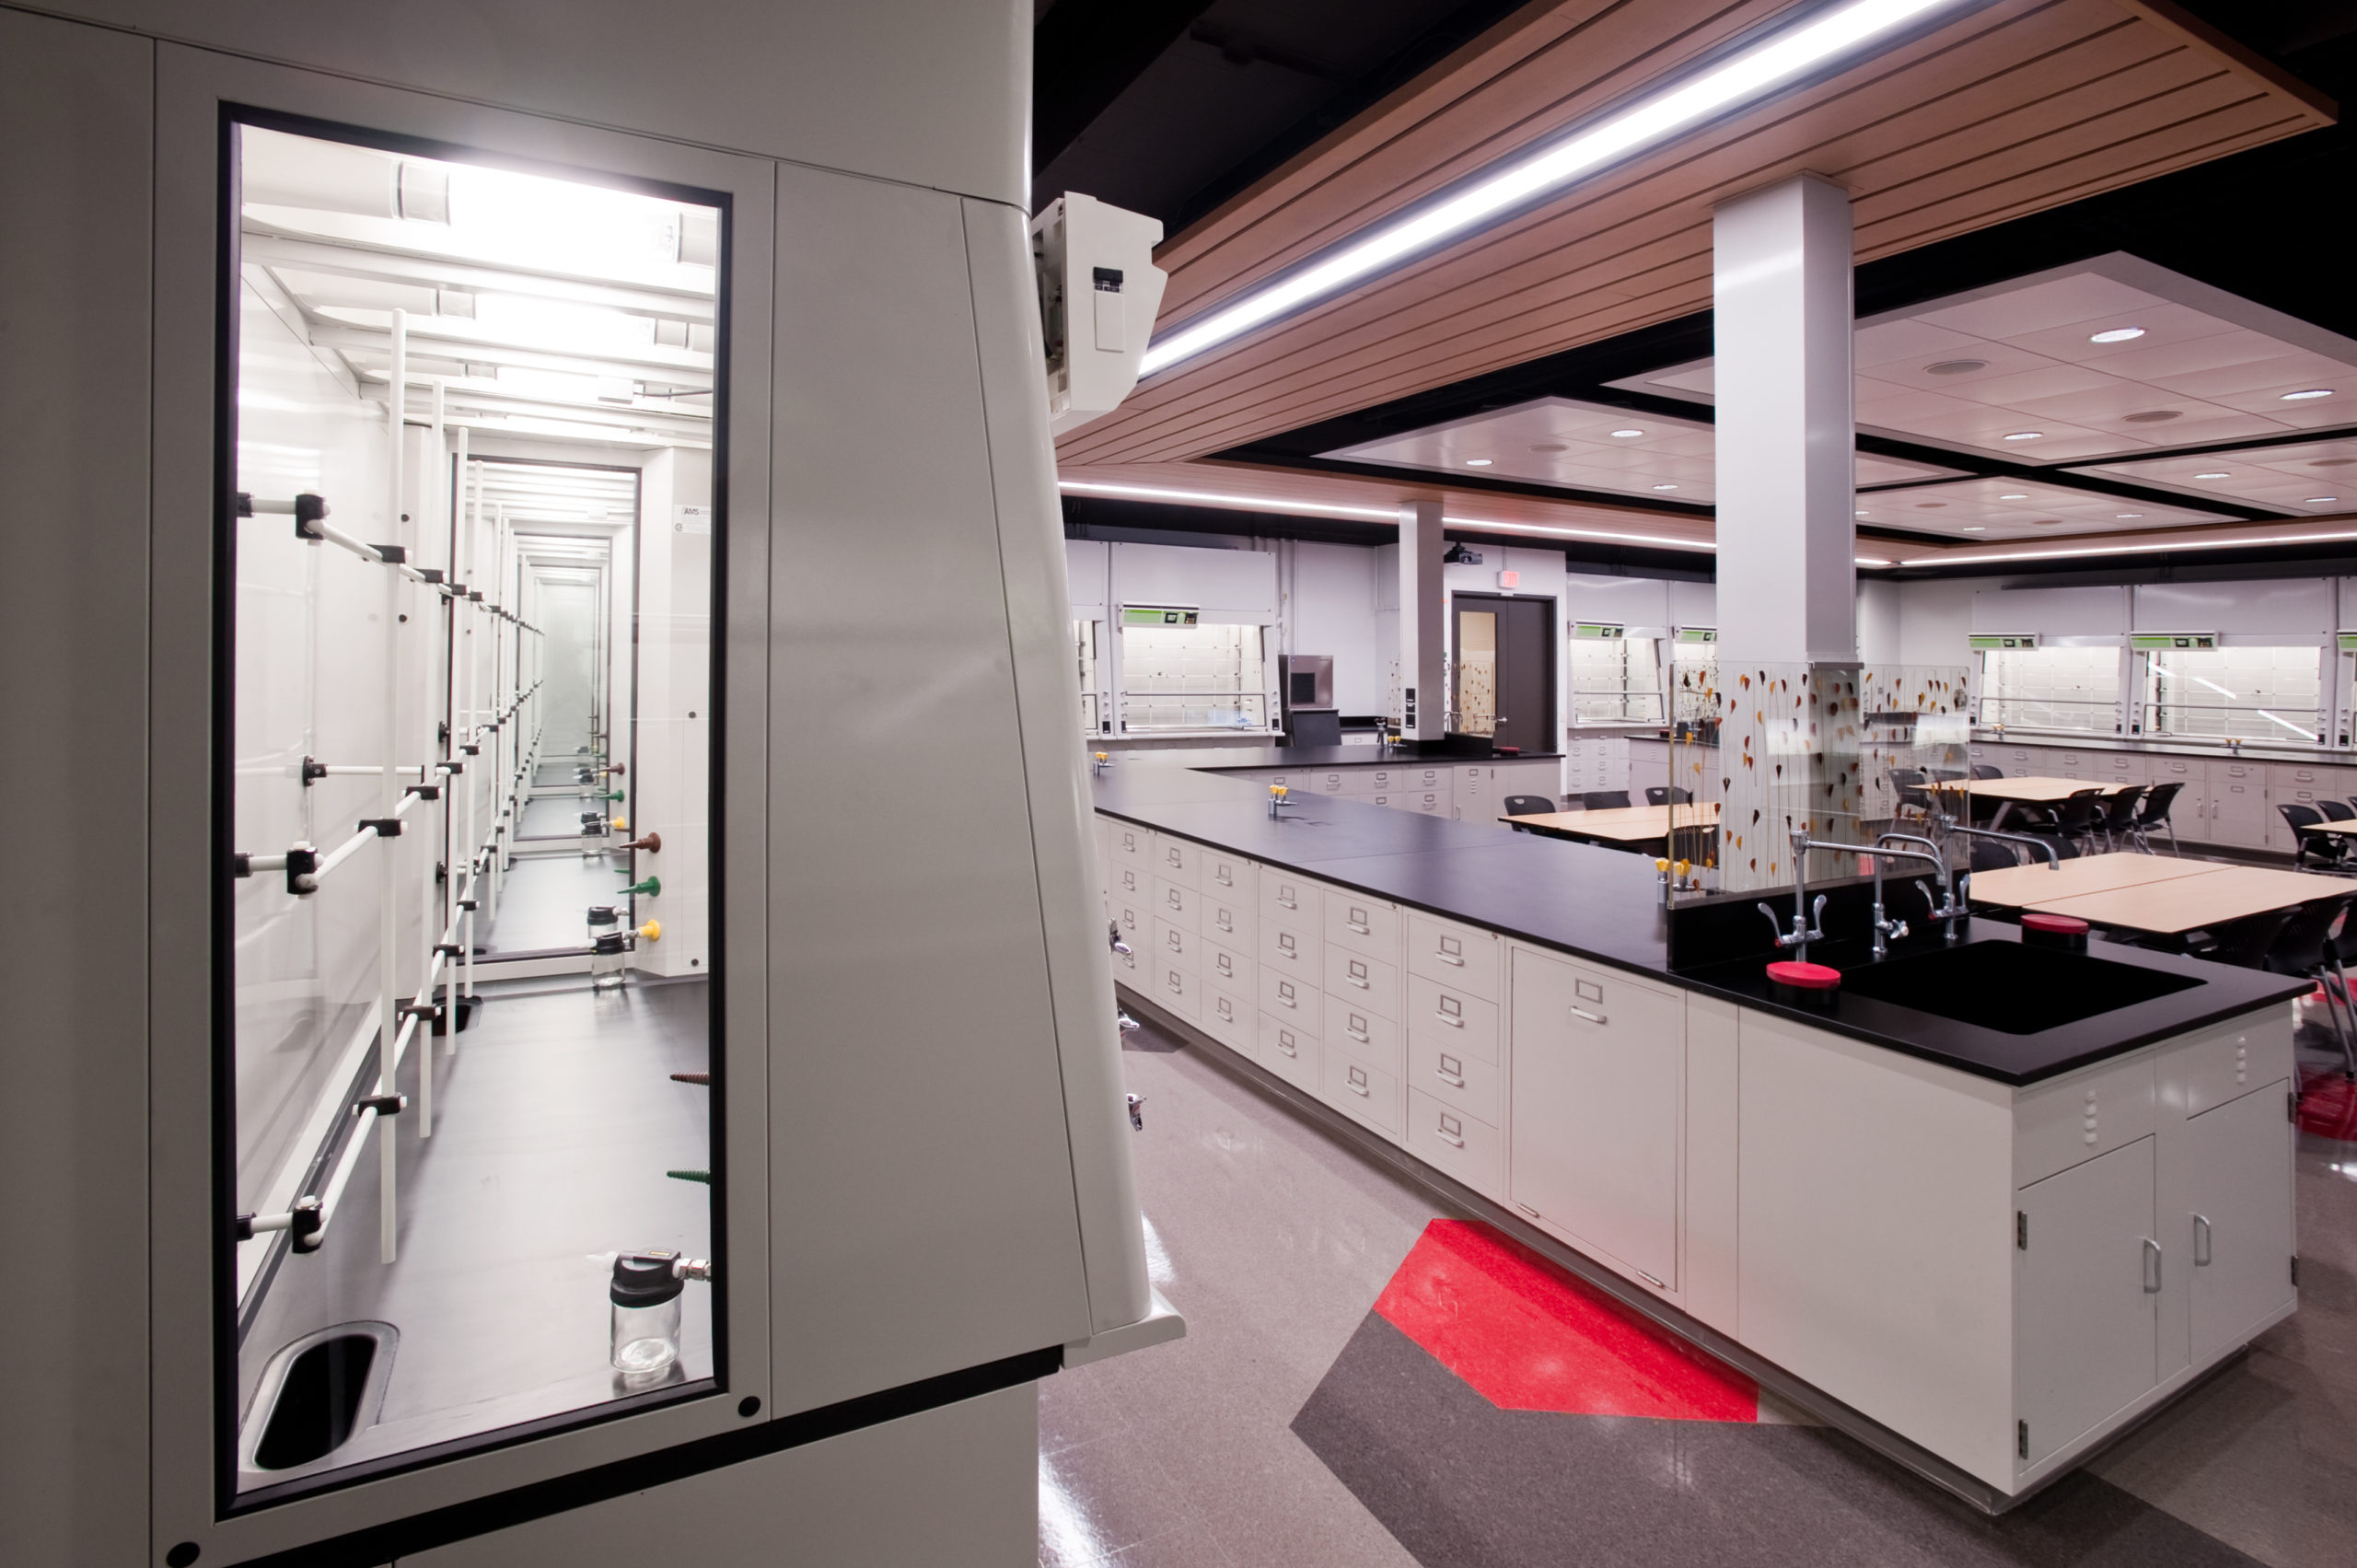 Integrating Ducted & Filtered Ductless Fume Hoods = Total Lab Efficiency & Safety